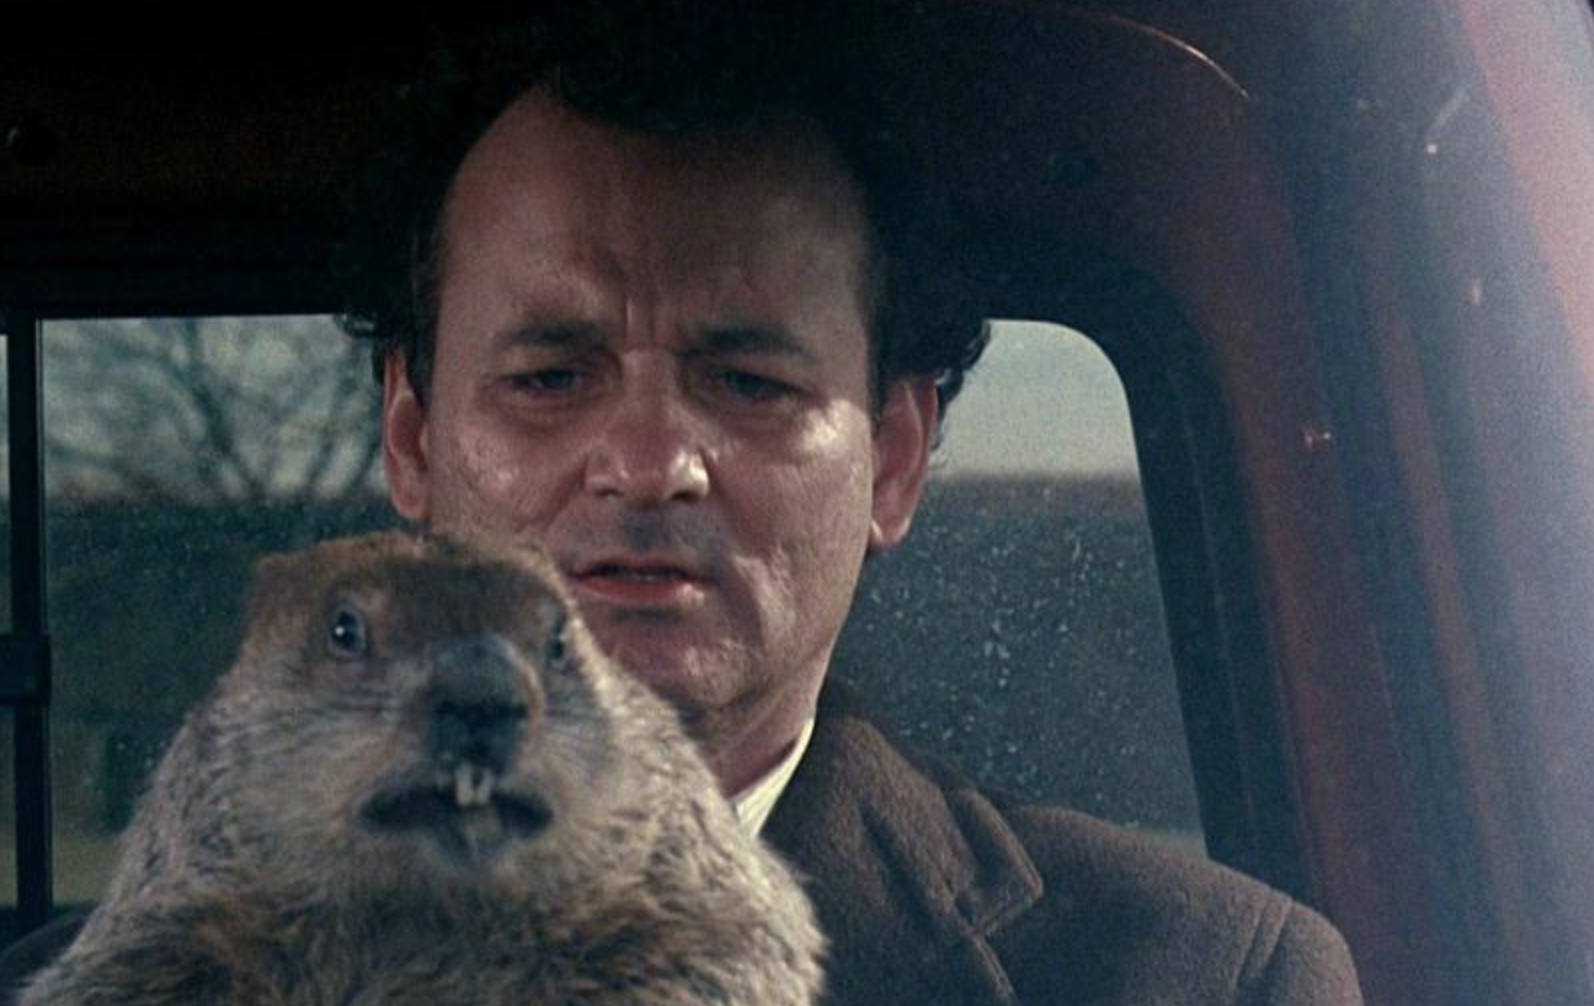 Famous Groundhog, Punxsutawney Phil Prediction Revealed for 2018